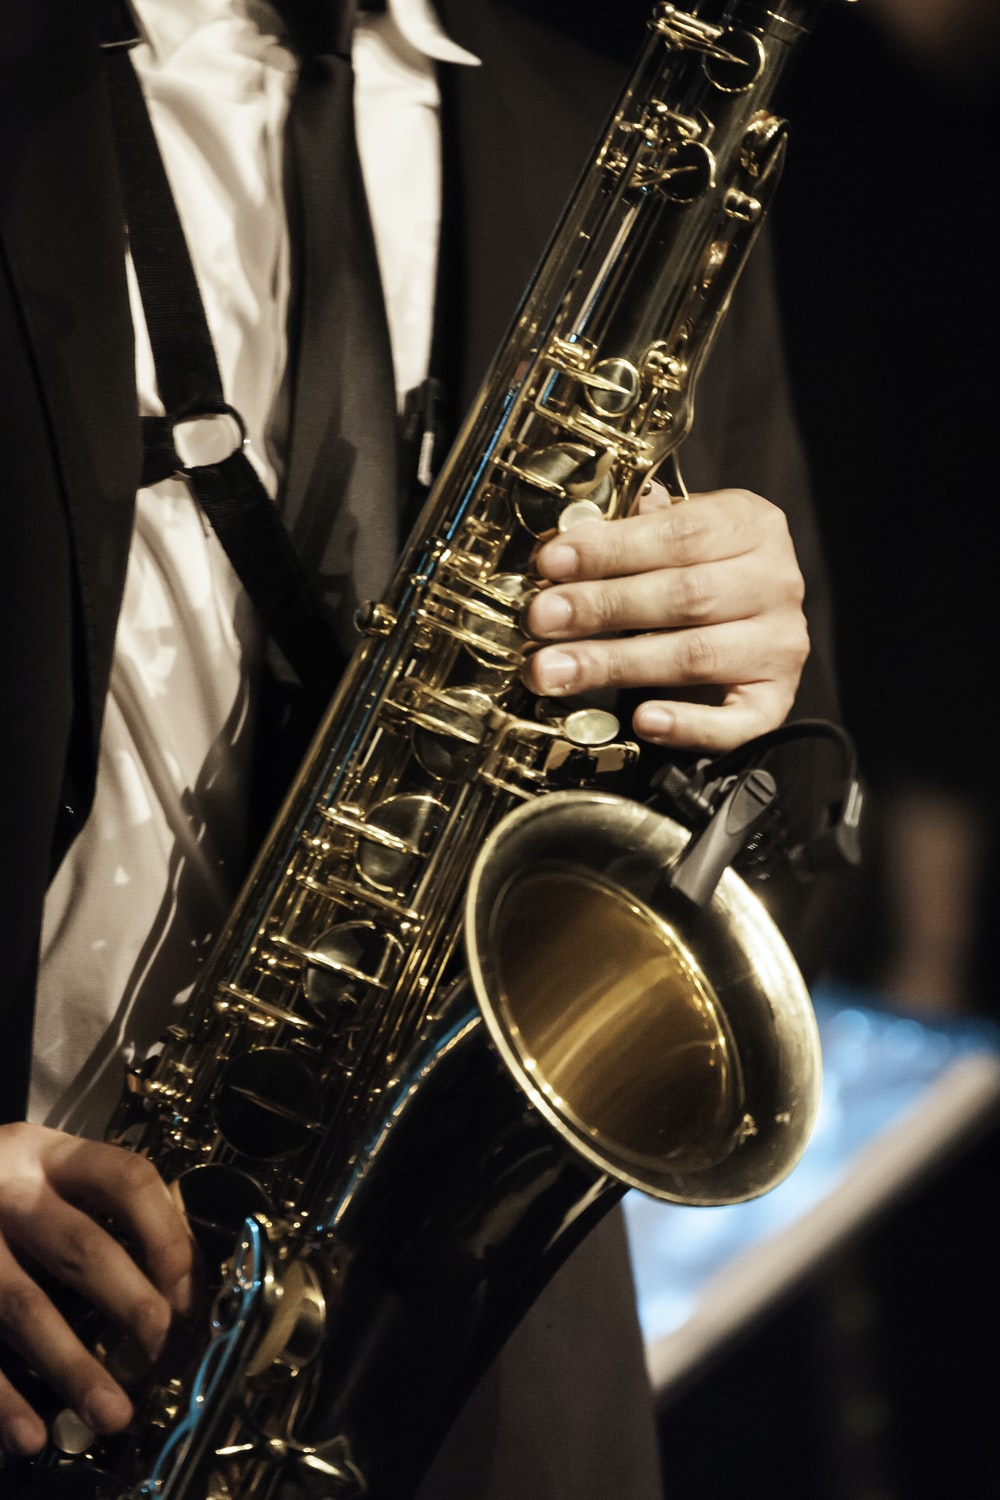 person in white dress shirt holding saxophone